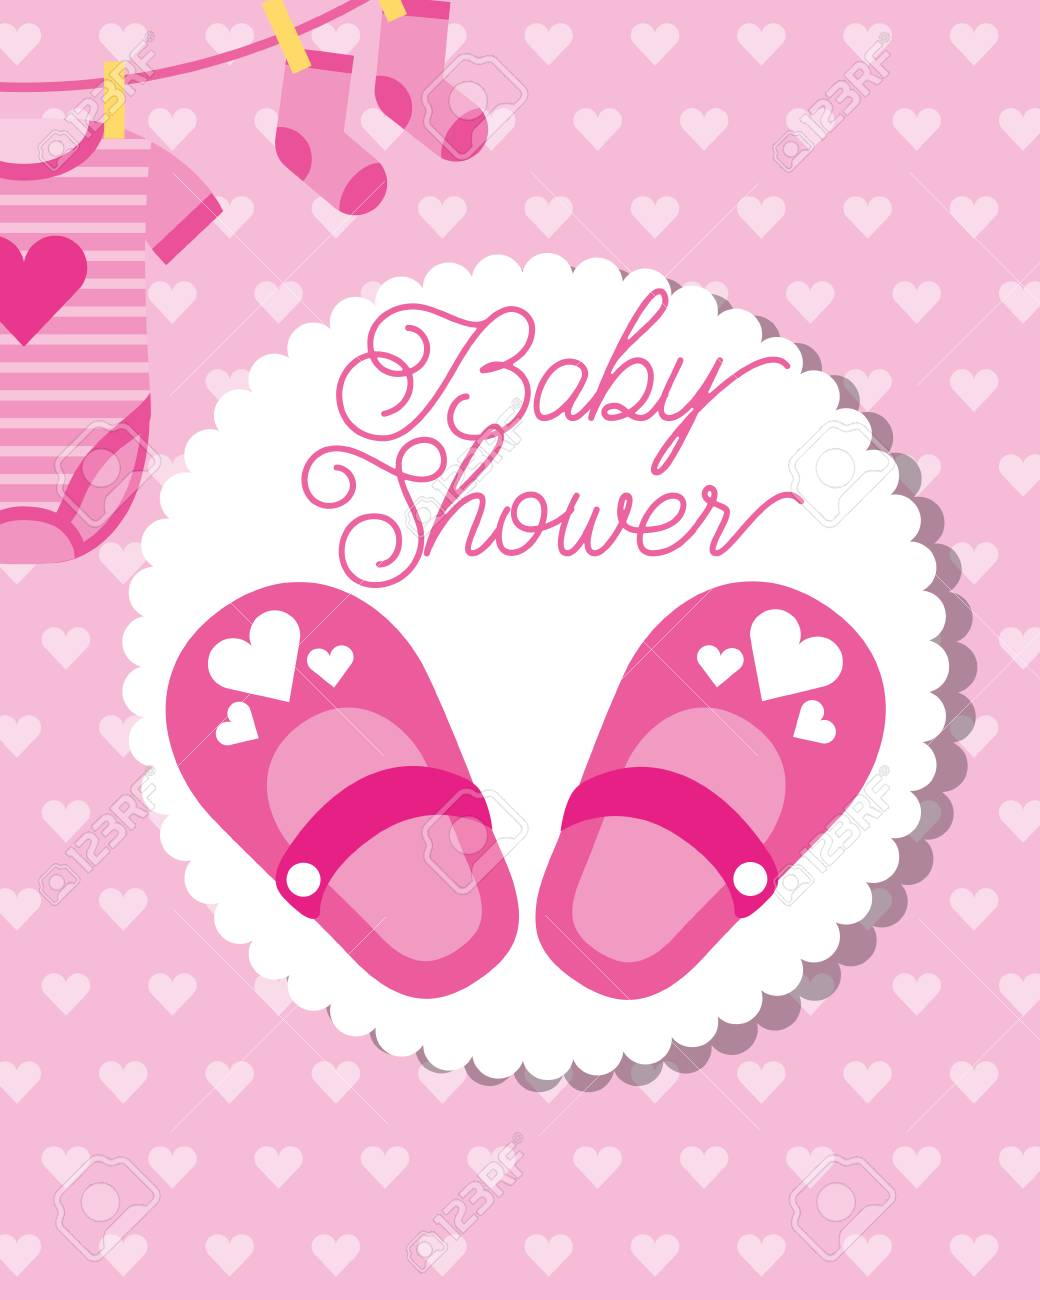 pink little shoes socks and bodysuit baby shower greeting card vector illustration - 114982313